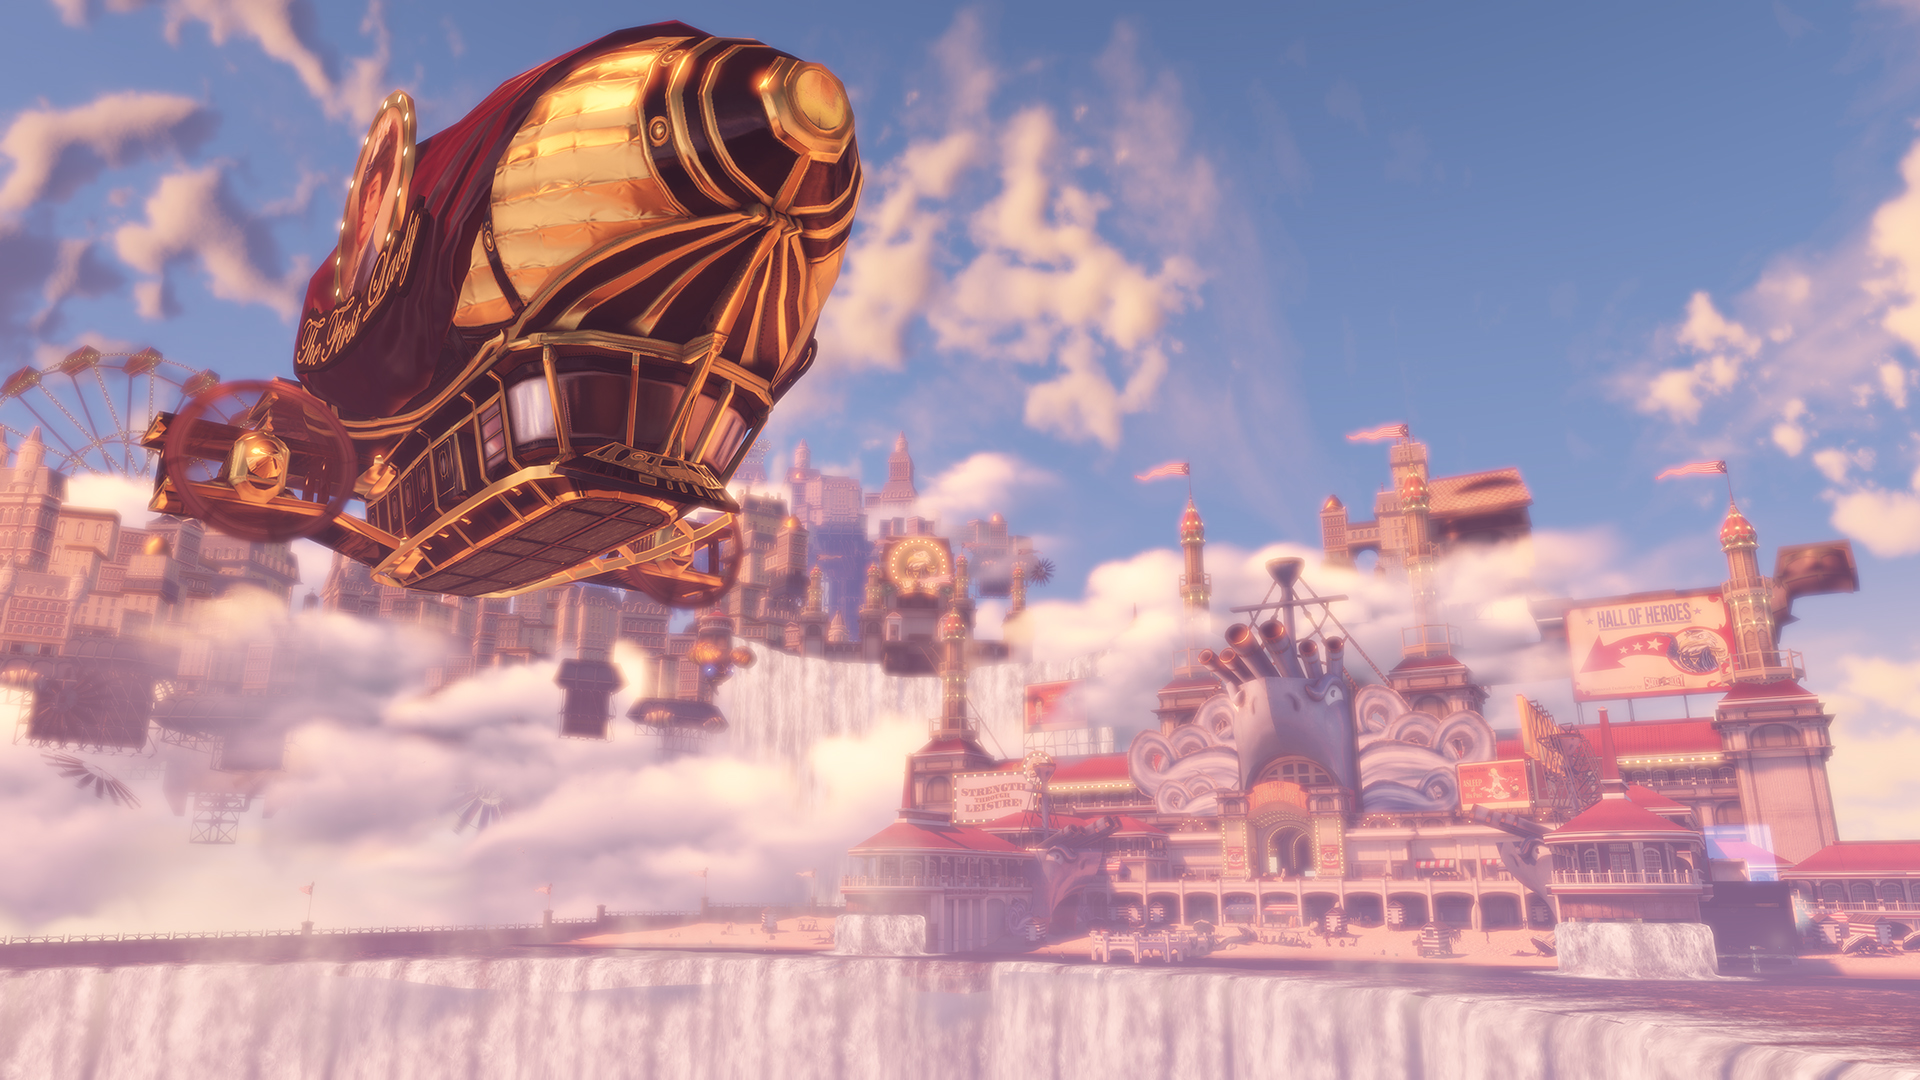 Delayed games - Bioshock Infinite